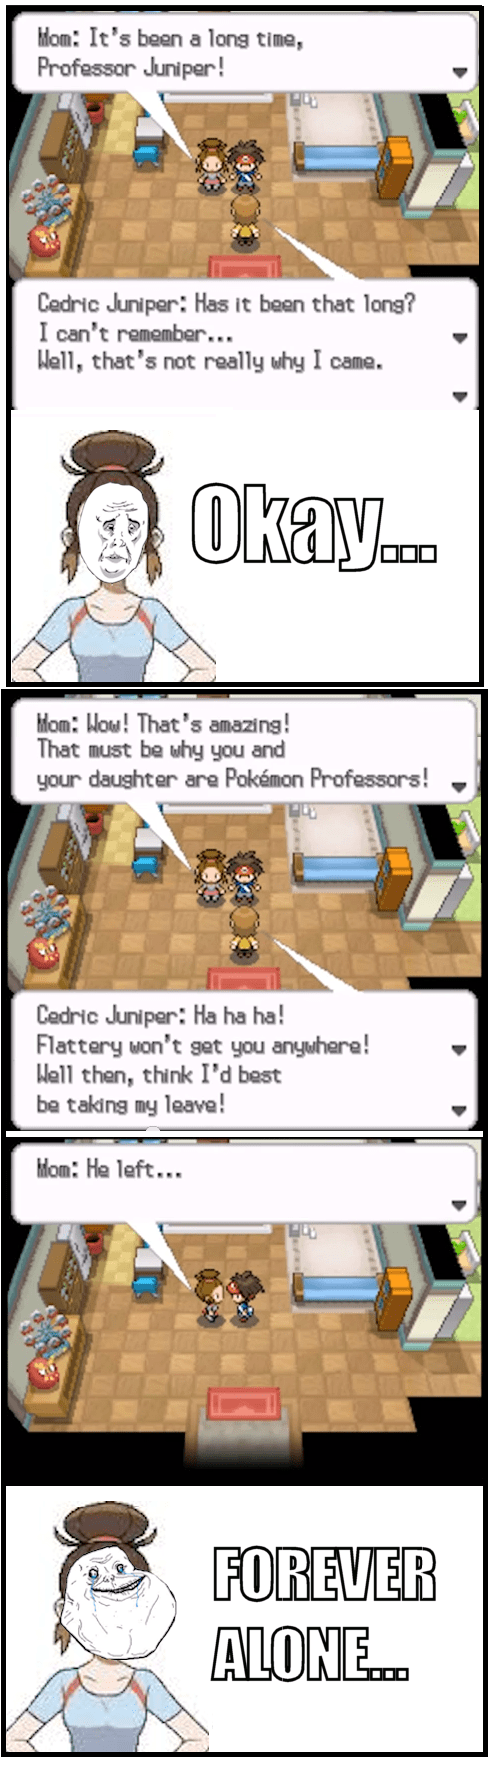 Sad forever alone professor juniper gameplay turned down - 7052305408